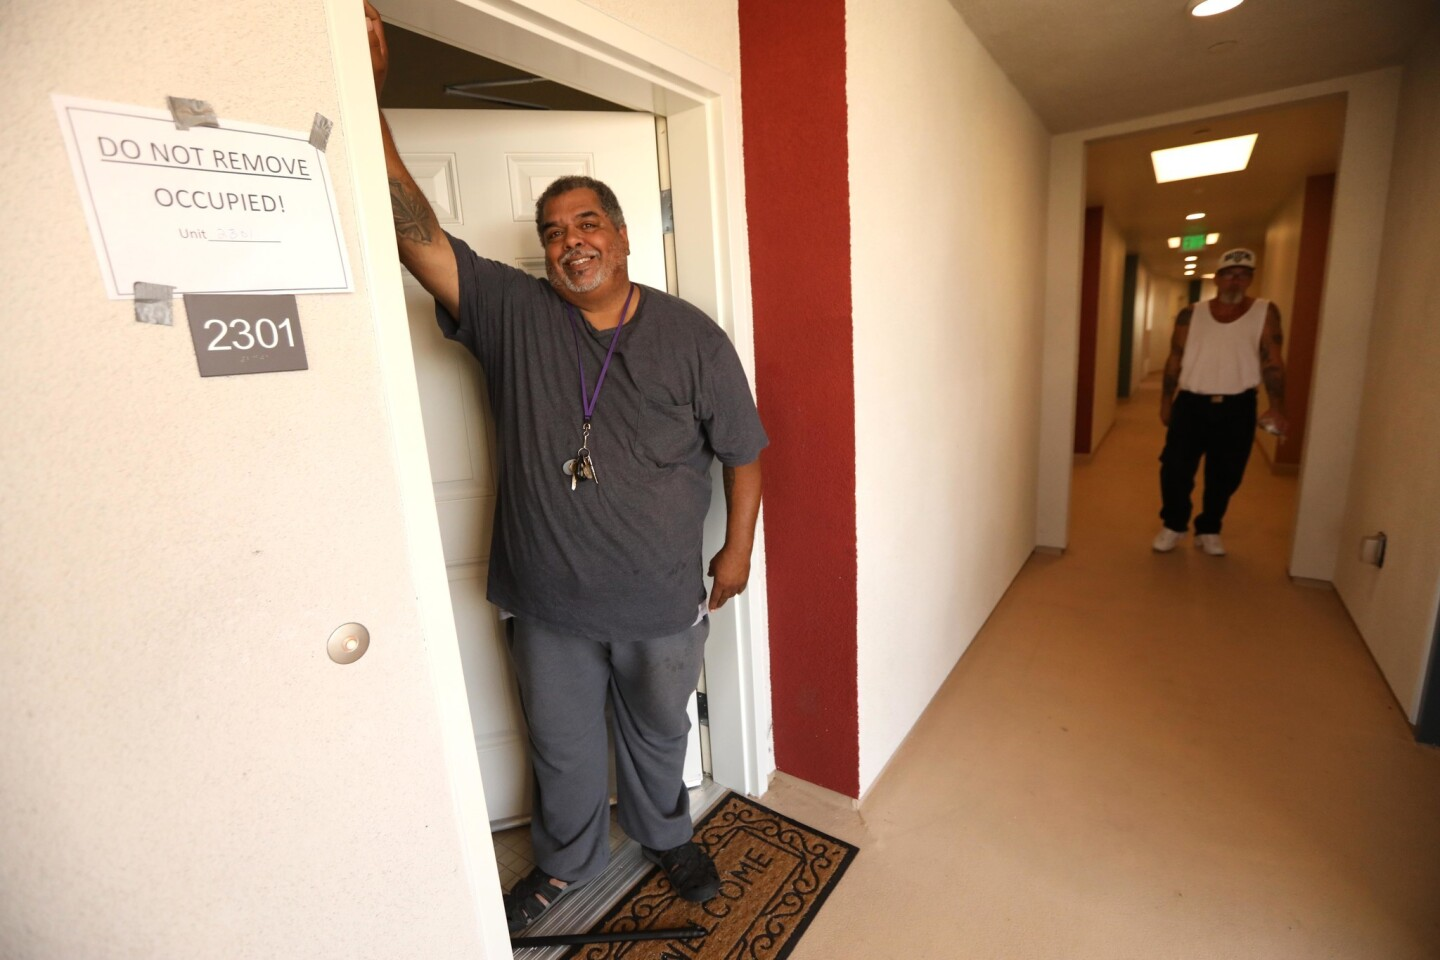 Terrence Horsley, 51, who was formally homeless for seven years, now lives at the new Donald & Priscilla Hunt Apartments in Bell, Calif. The Salvation Army dedicated the apartments Thursday.